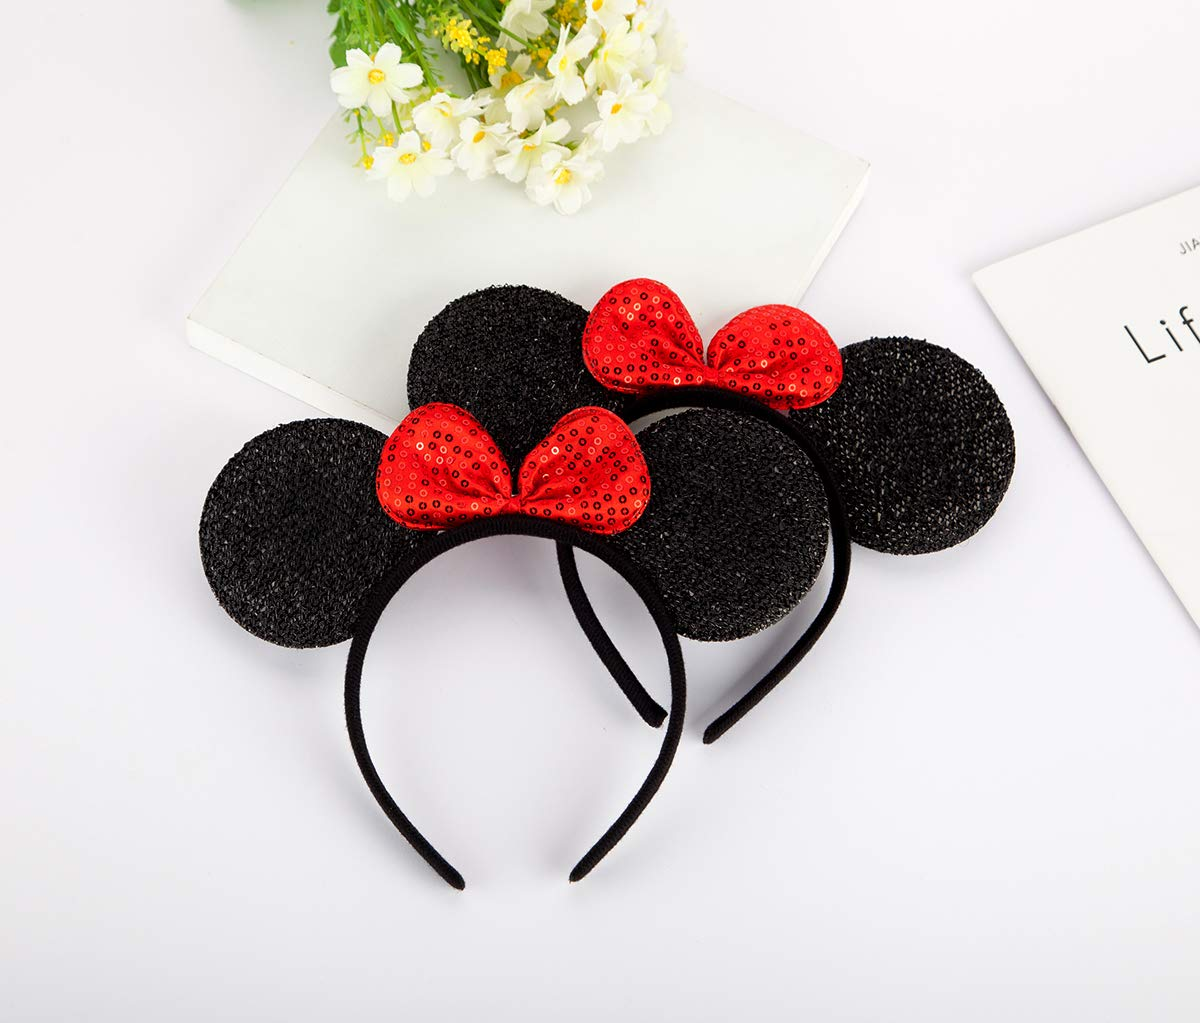 FANXIER  2 Pcs Mice Ears Headbands Hair Band for Children Mom Baby Boys Girls Birthday Party Mouse Ears